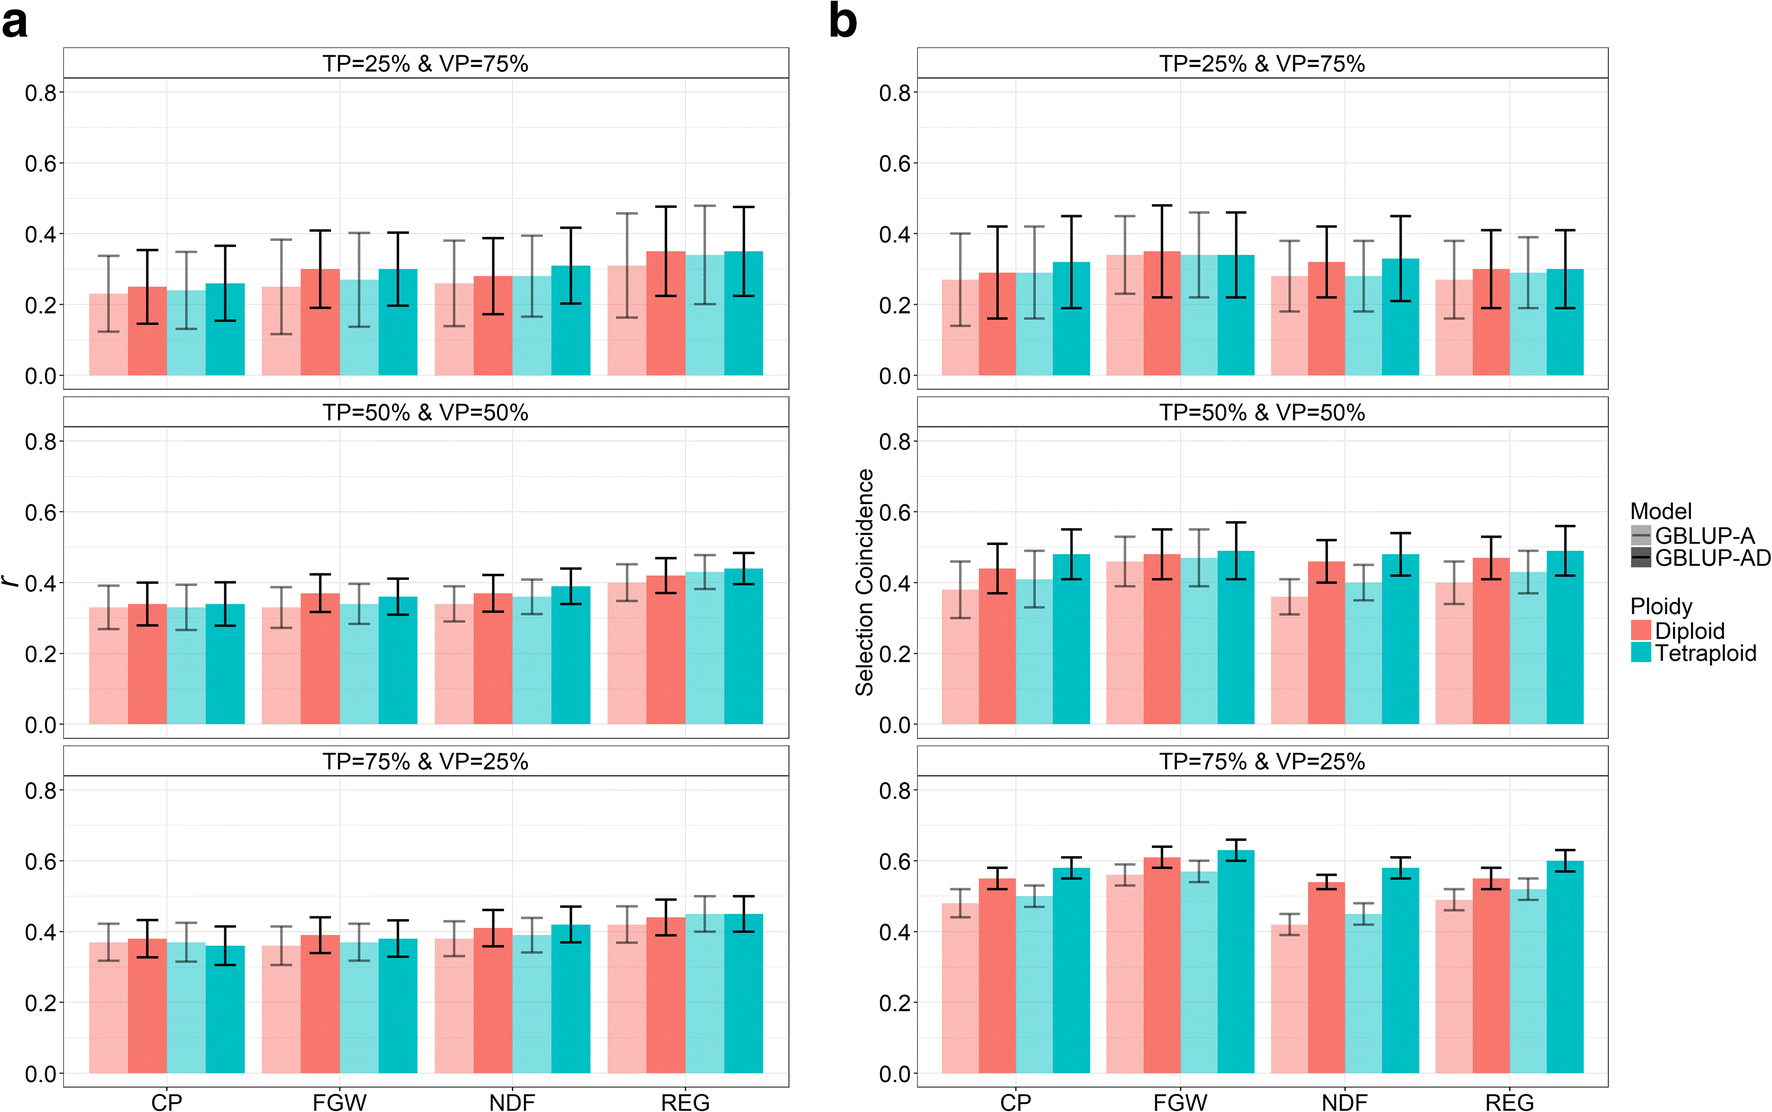 On the accuracy of genomic prediction models considering